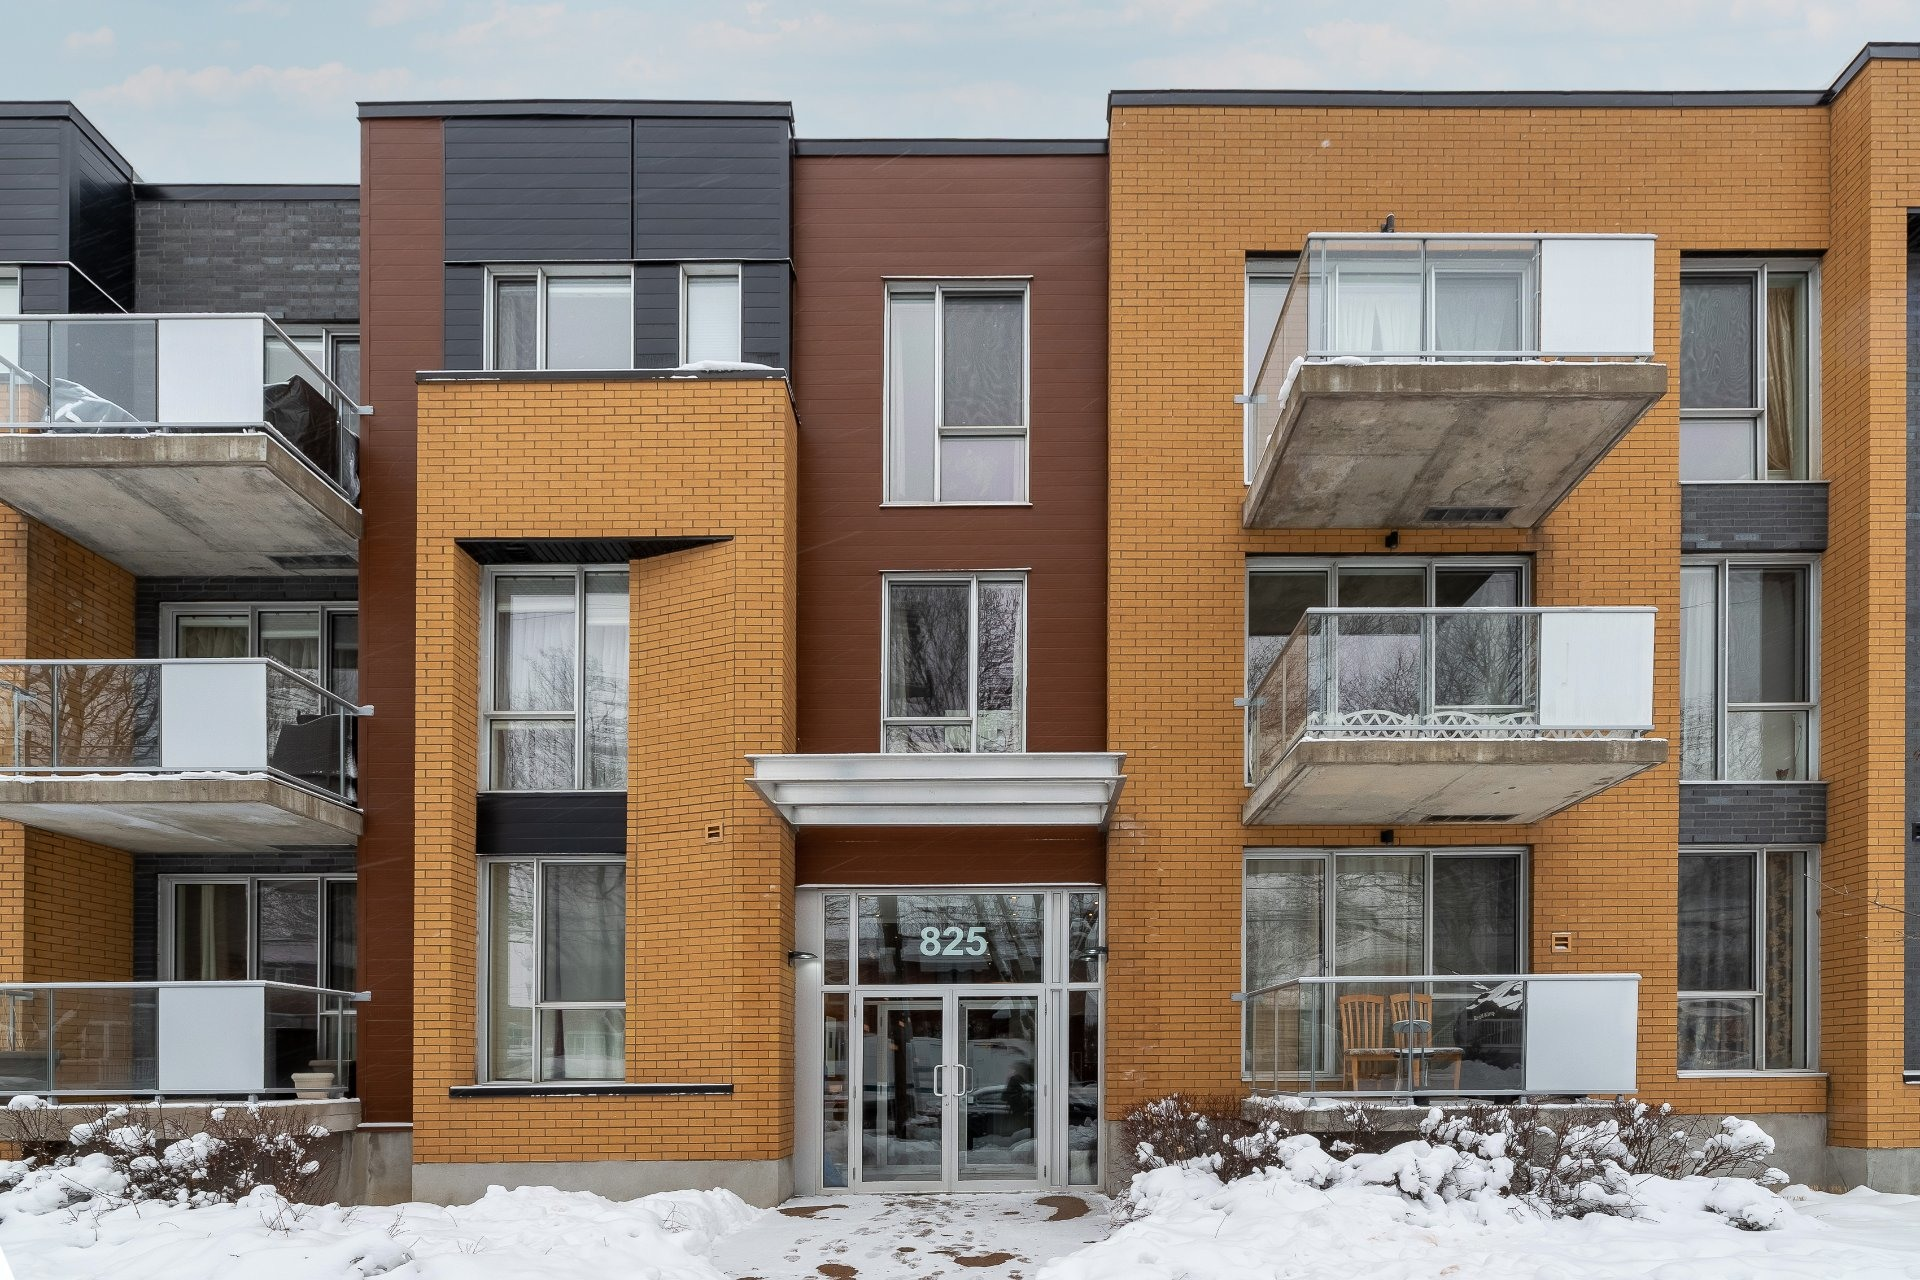 image 21 - Apartment For sale Mercier/Hochelaga-Maisonneuve Montréal  - 5 rooms